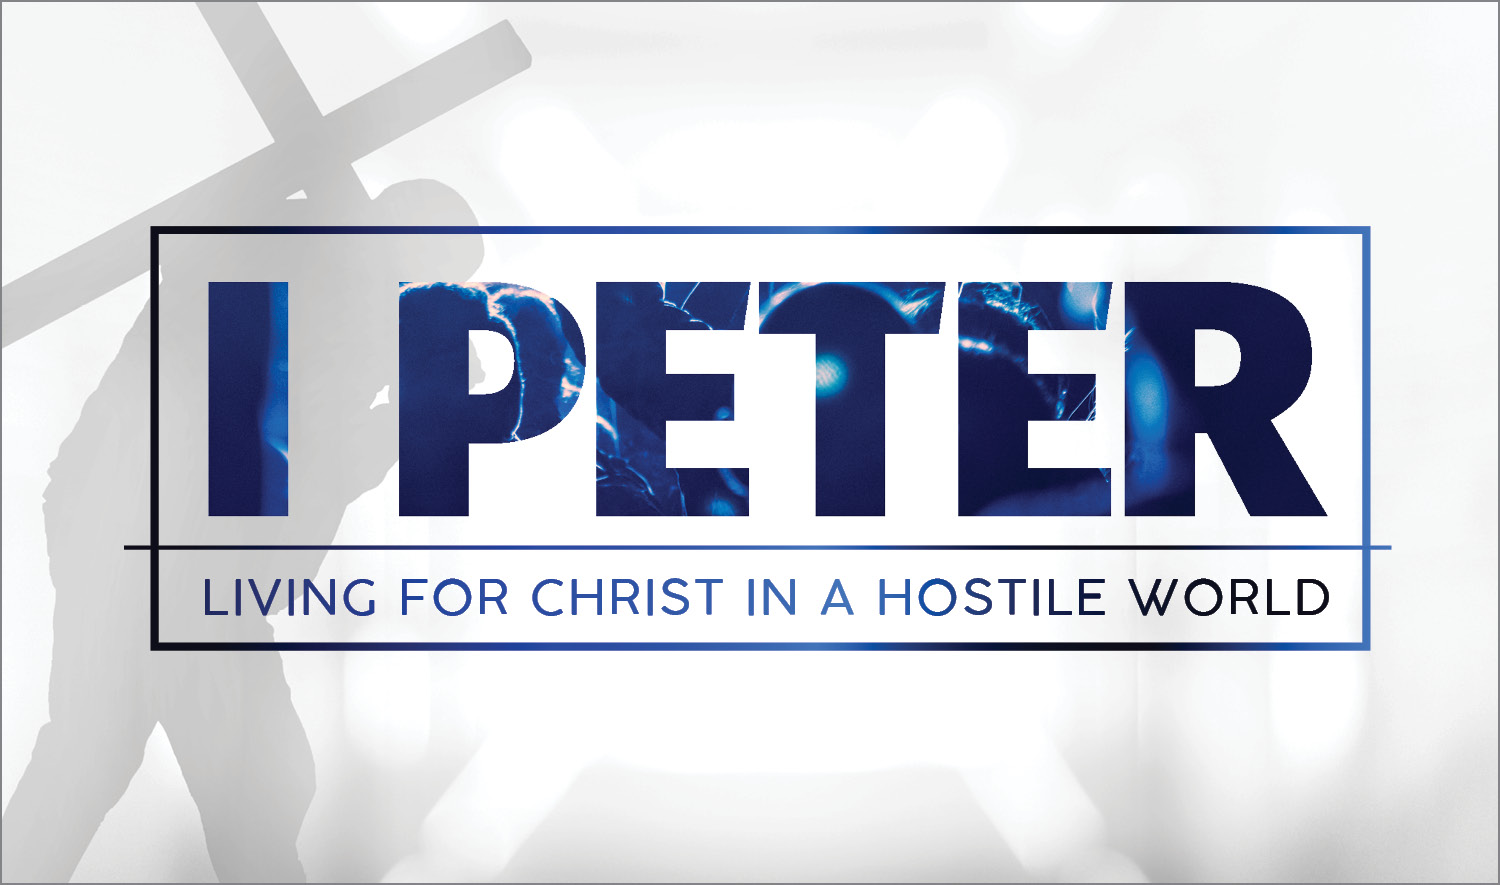 1 Peter: Living for Christ in a Hostile World